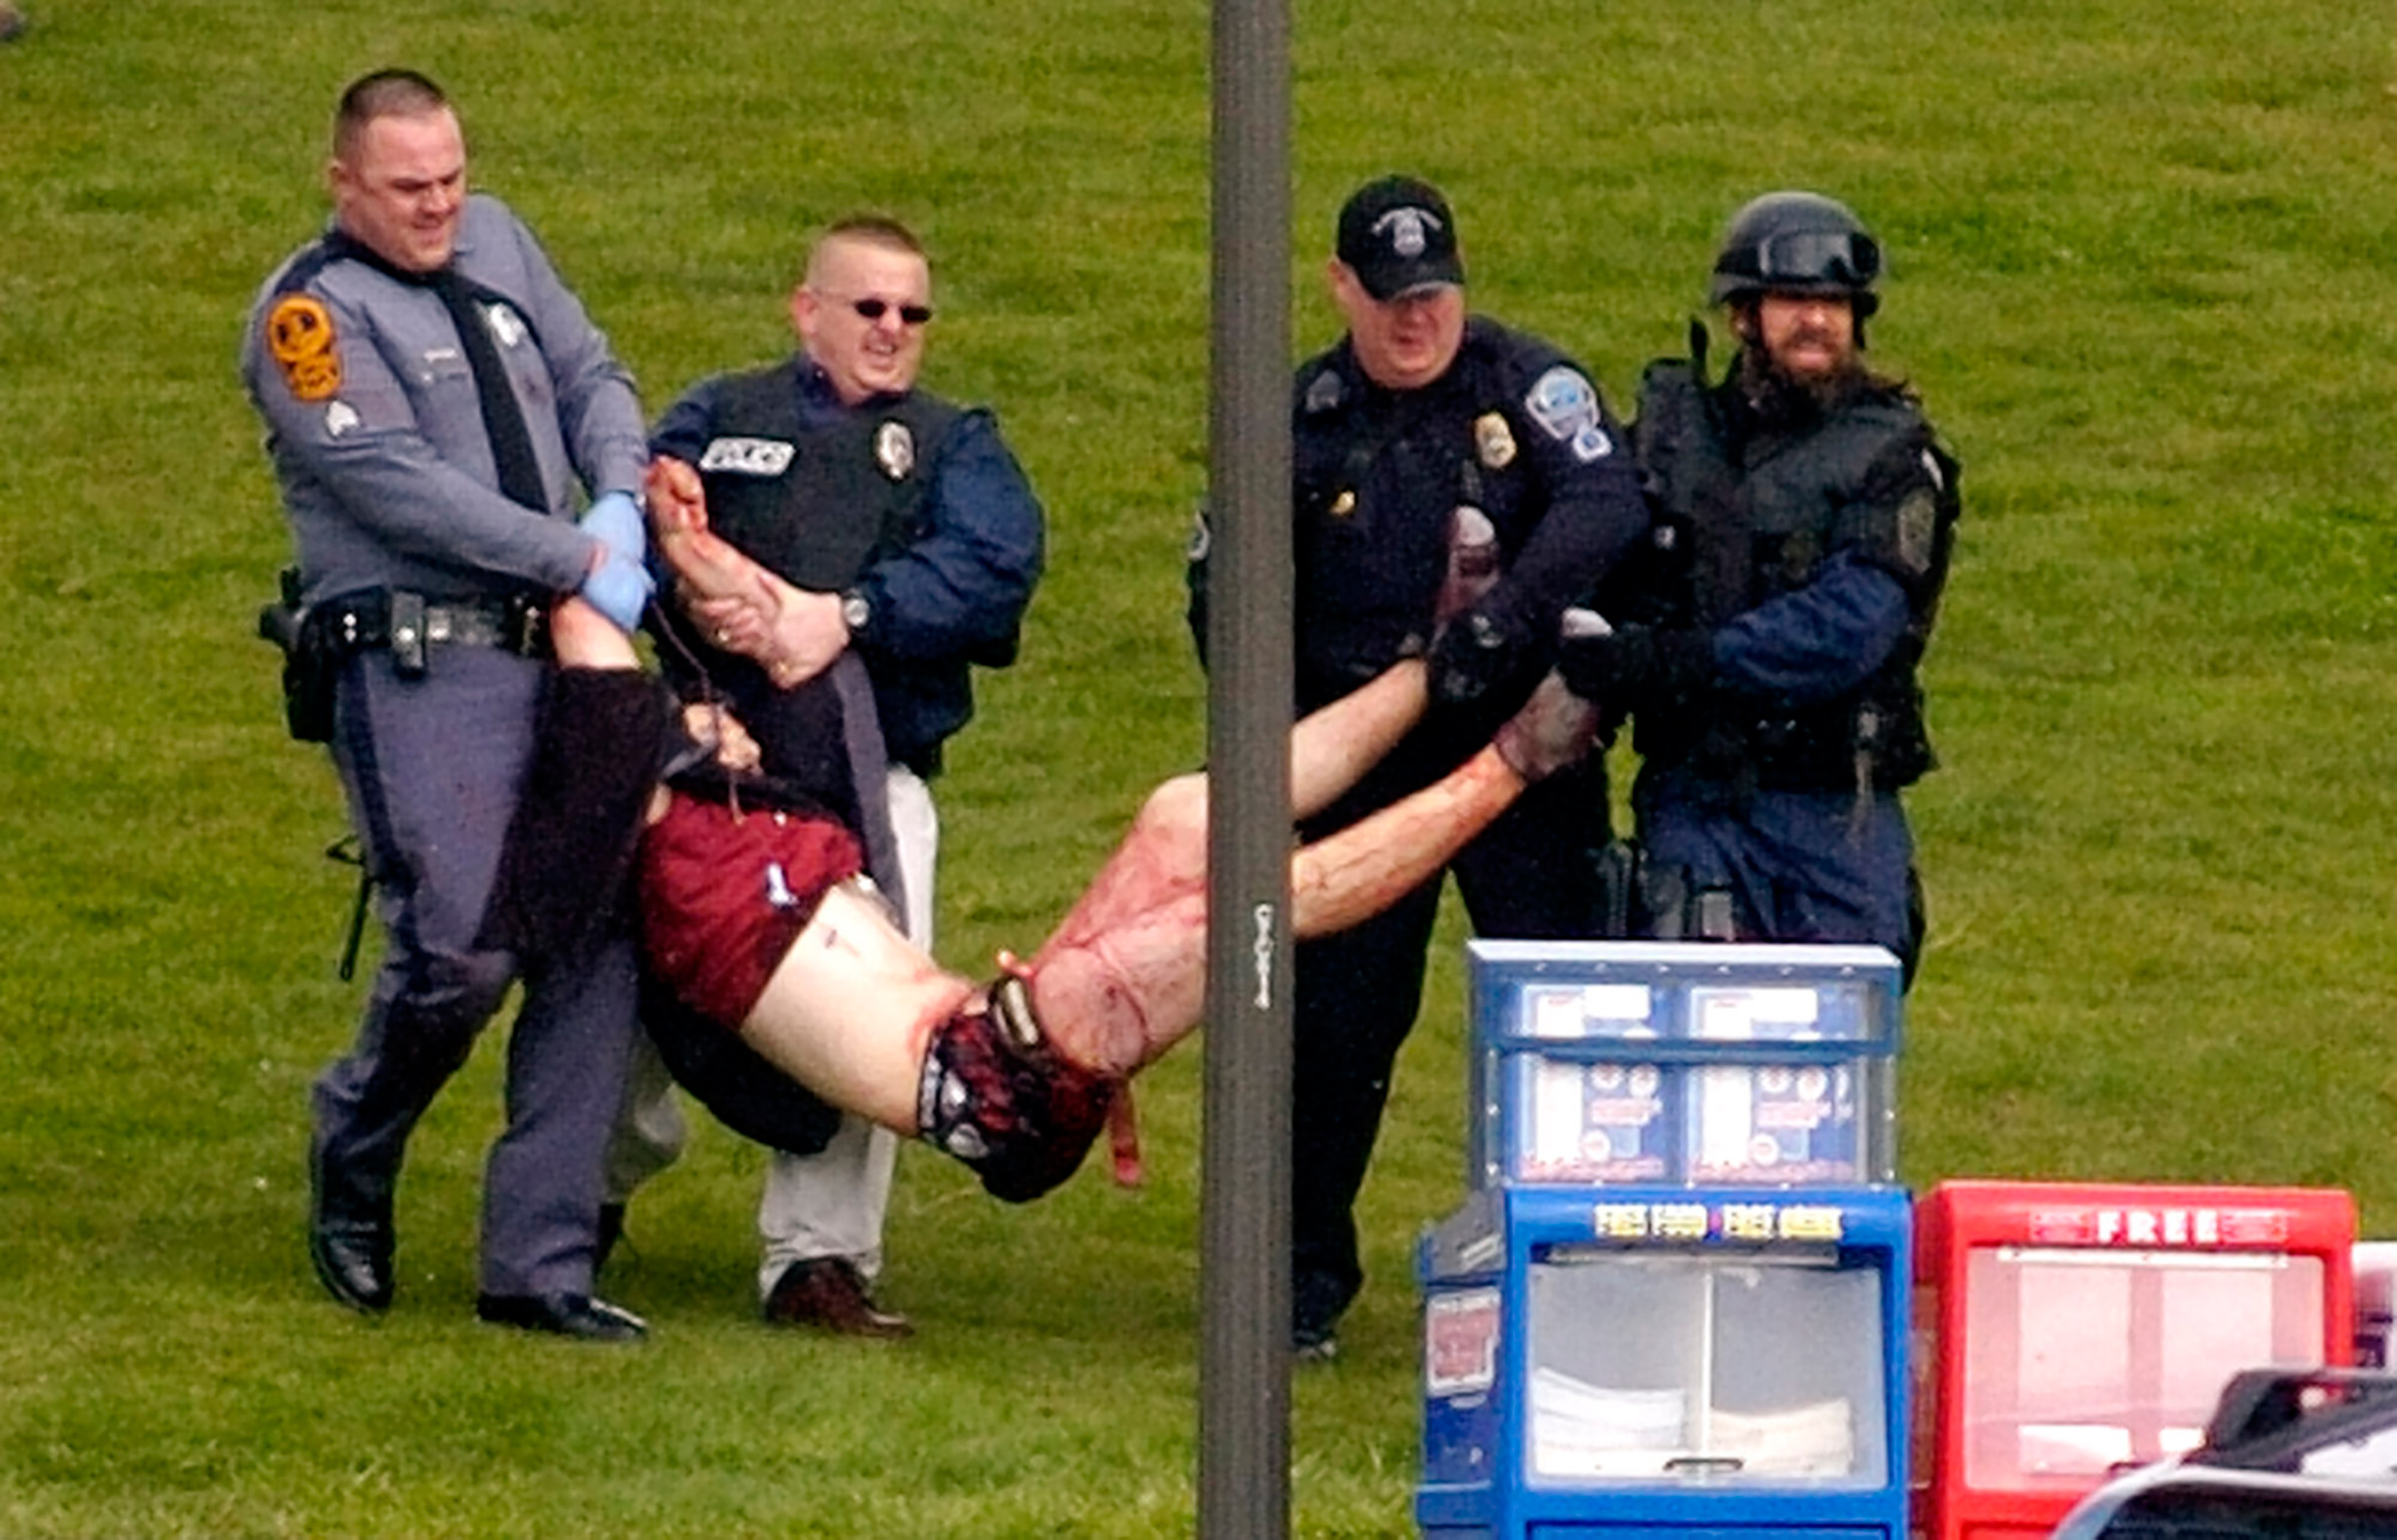 Student Kevin Sterne, is carried out of Norris Hall at Virginia Tech in Blacksburg, Va. in this April 16, 2007 photo. Sterne was one of the wounded students who survived the mass shooting on April 16.